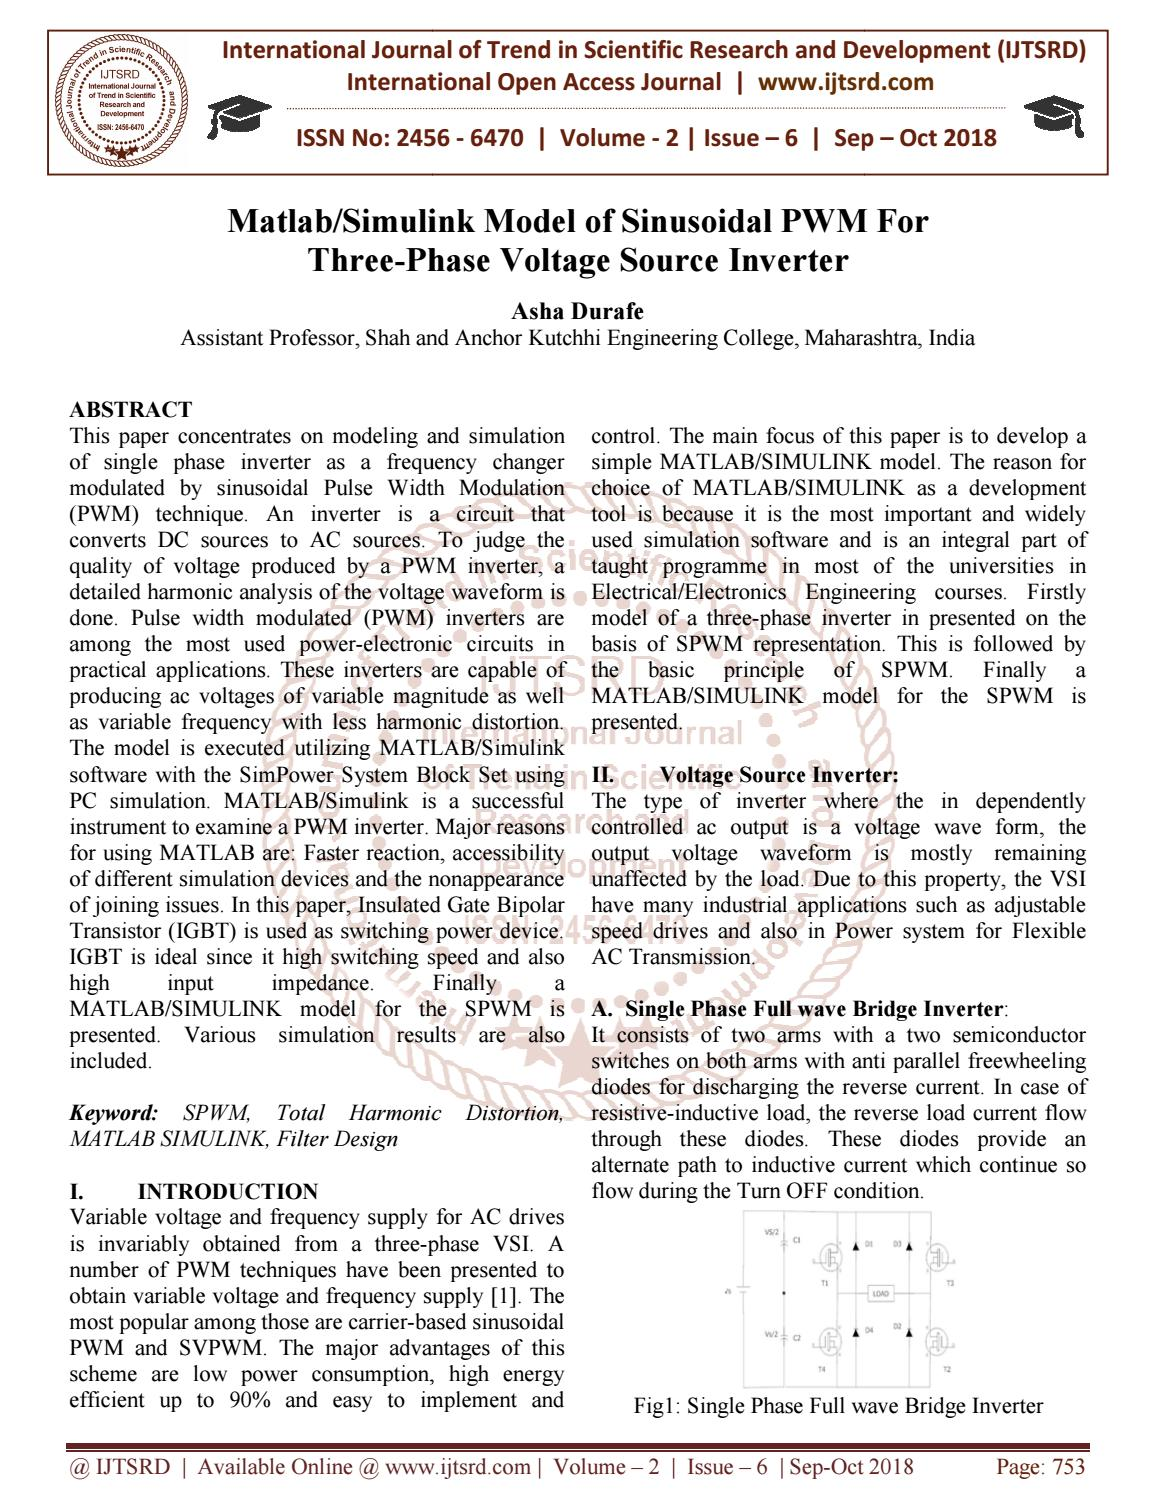 Matlab Simulink Model of Sinusoidal PWM For Three-Phase